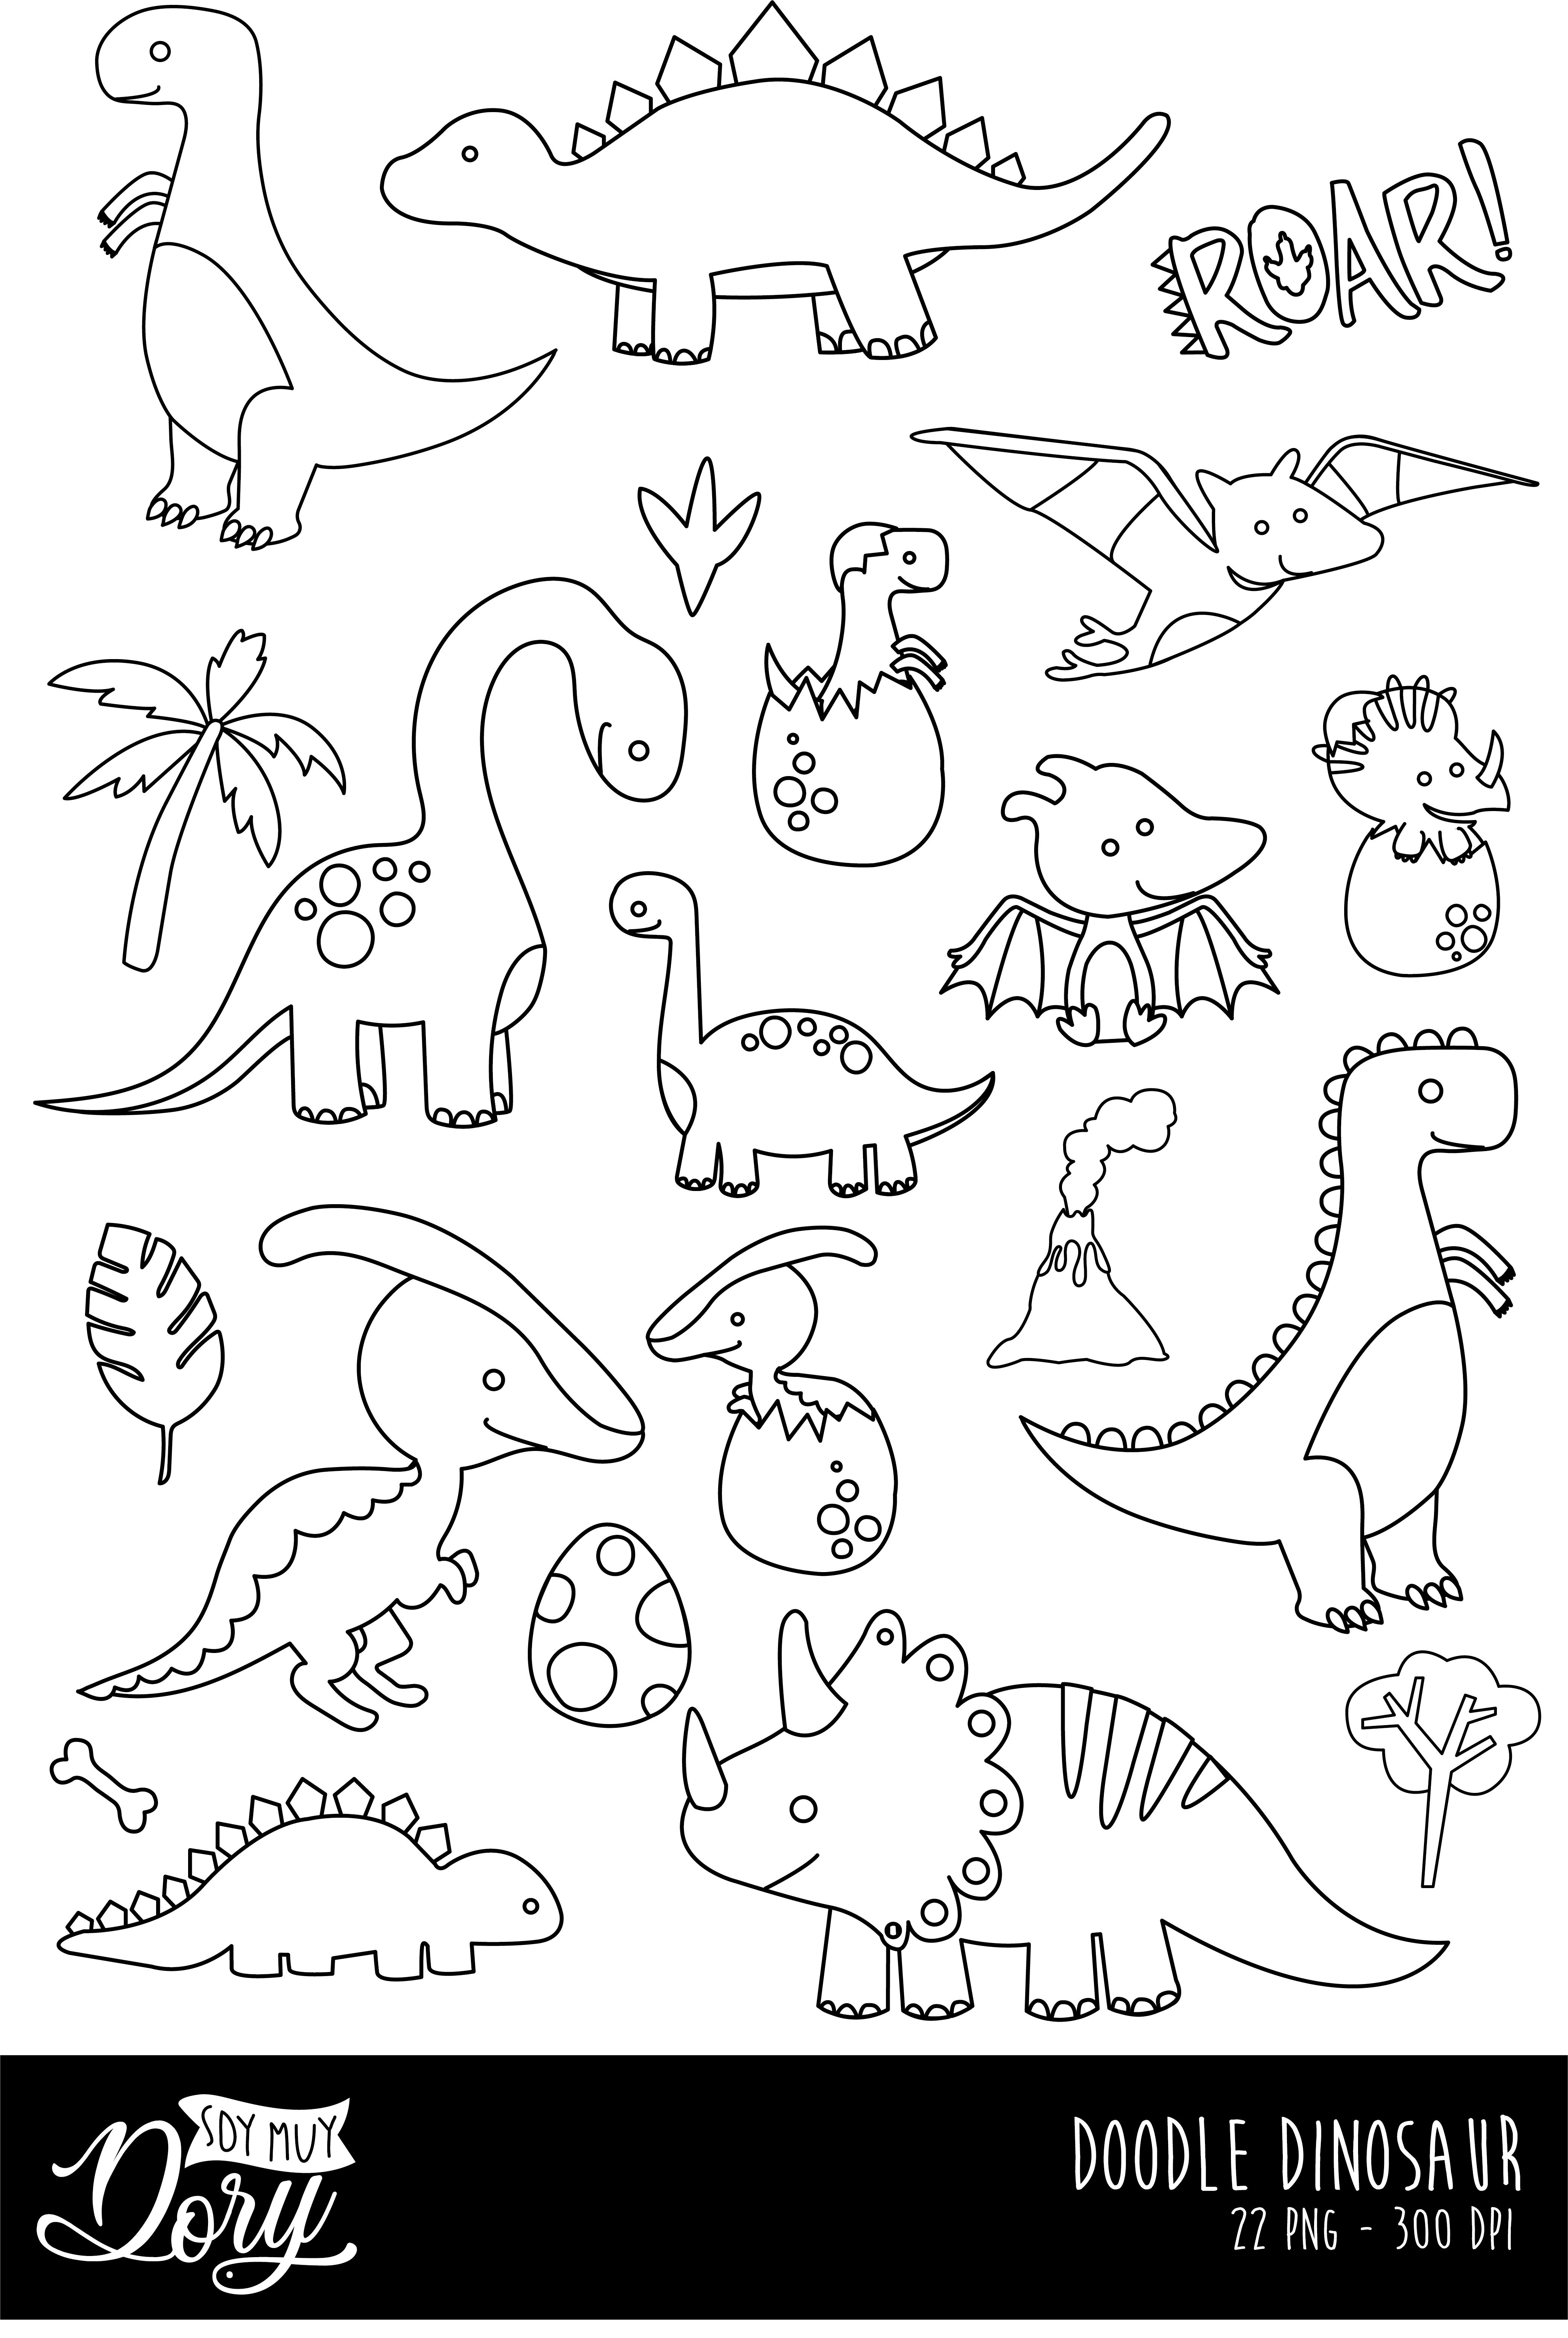 Cod28 Doodle Clipart Dinosaur Clipart Jurassic Park Clipart Dinosaur Printable Scrapbook Cliparts Instant Download Commercial Use In 2021 Free Motion Quilt Designs Clip Art Dinosaur Themed Birthday Party